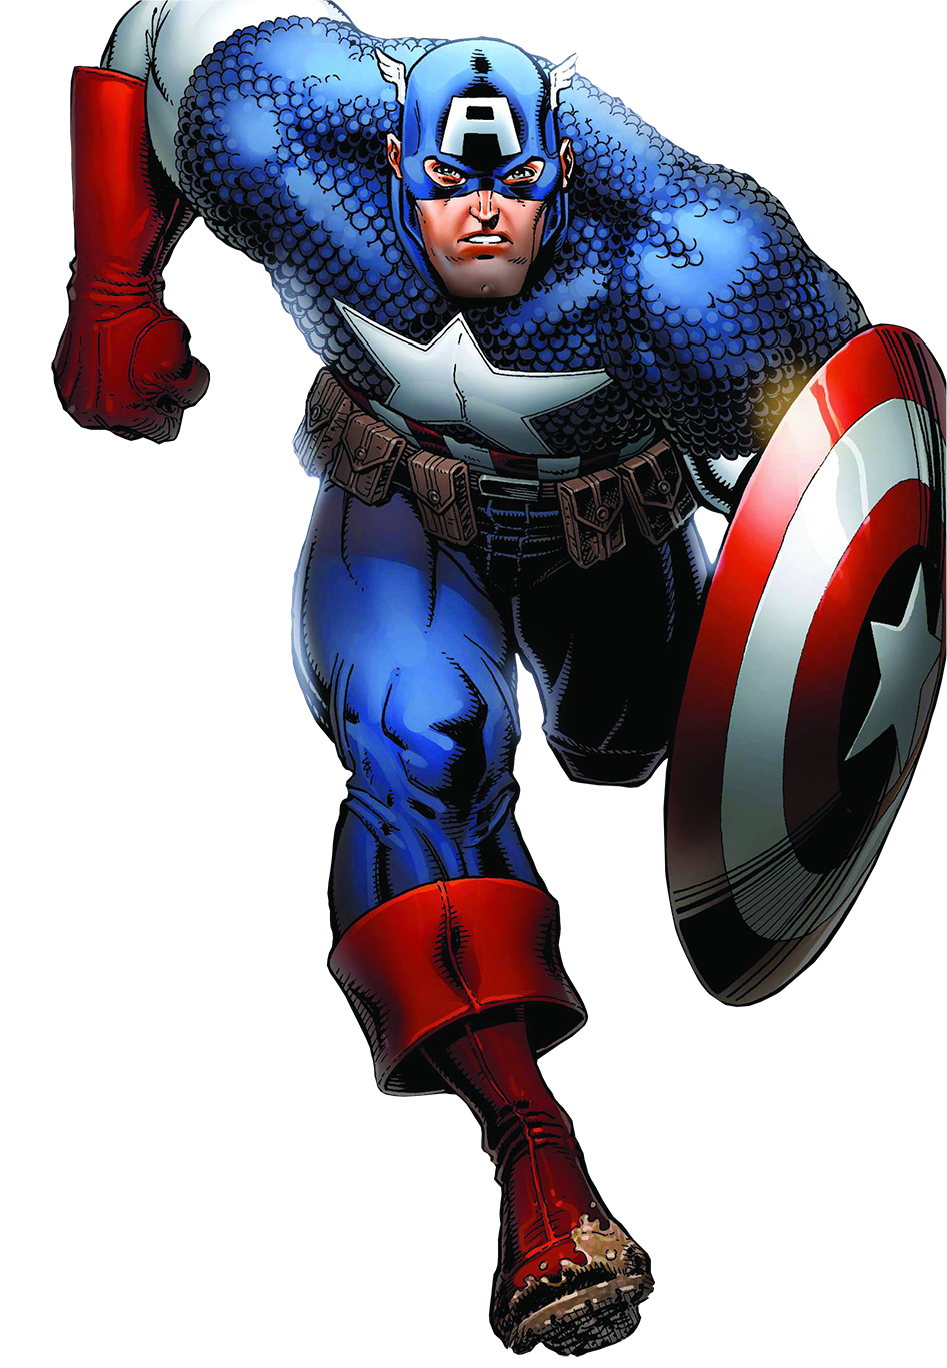 Cartoon captain america png. Marvel image purepng free